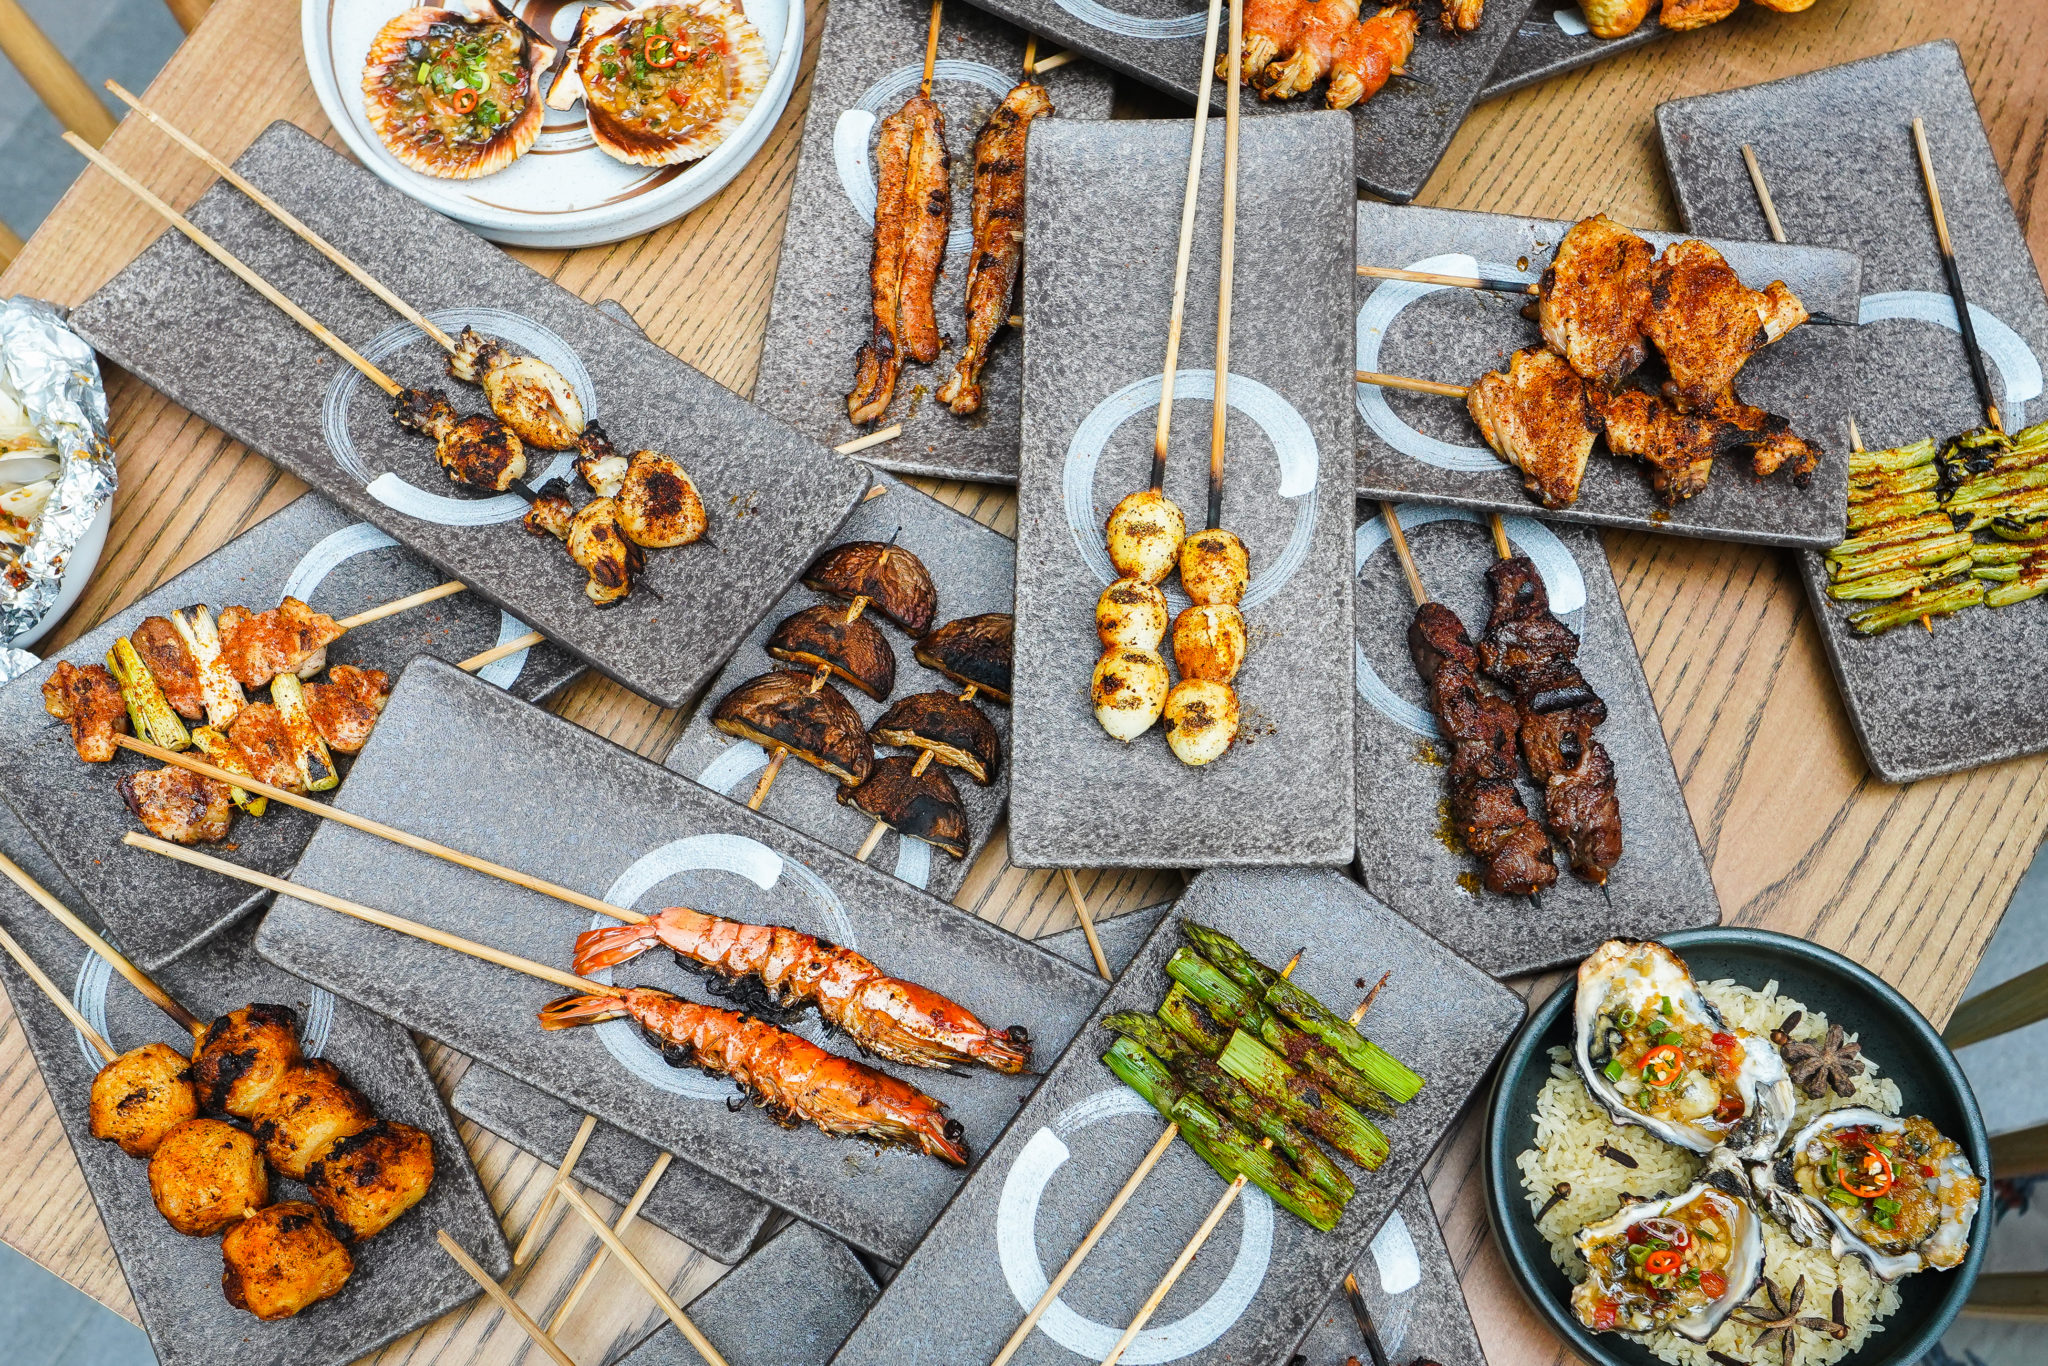 Fat Chap's Skewer Shao Kao party, with over 20 options of barbecued skewers and baked seafood. Skewer options include pork belly, quail egg, cuttlefish, tiger prawn, bacon wrapped scallop and more.